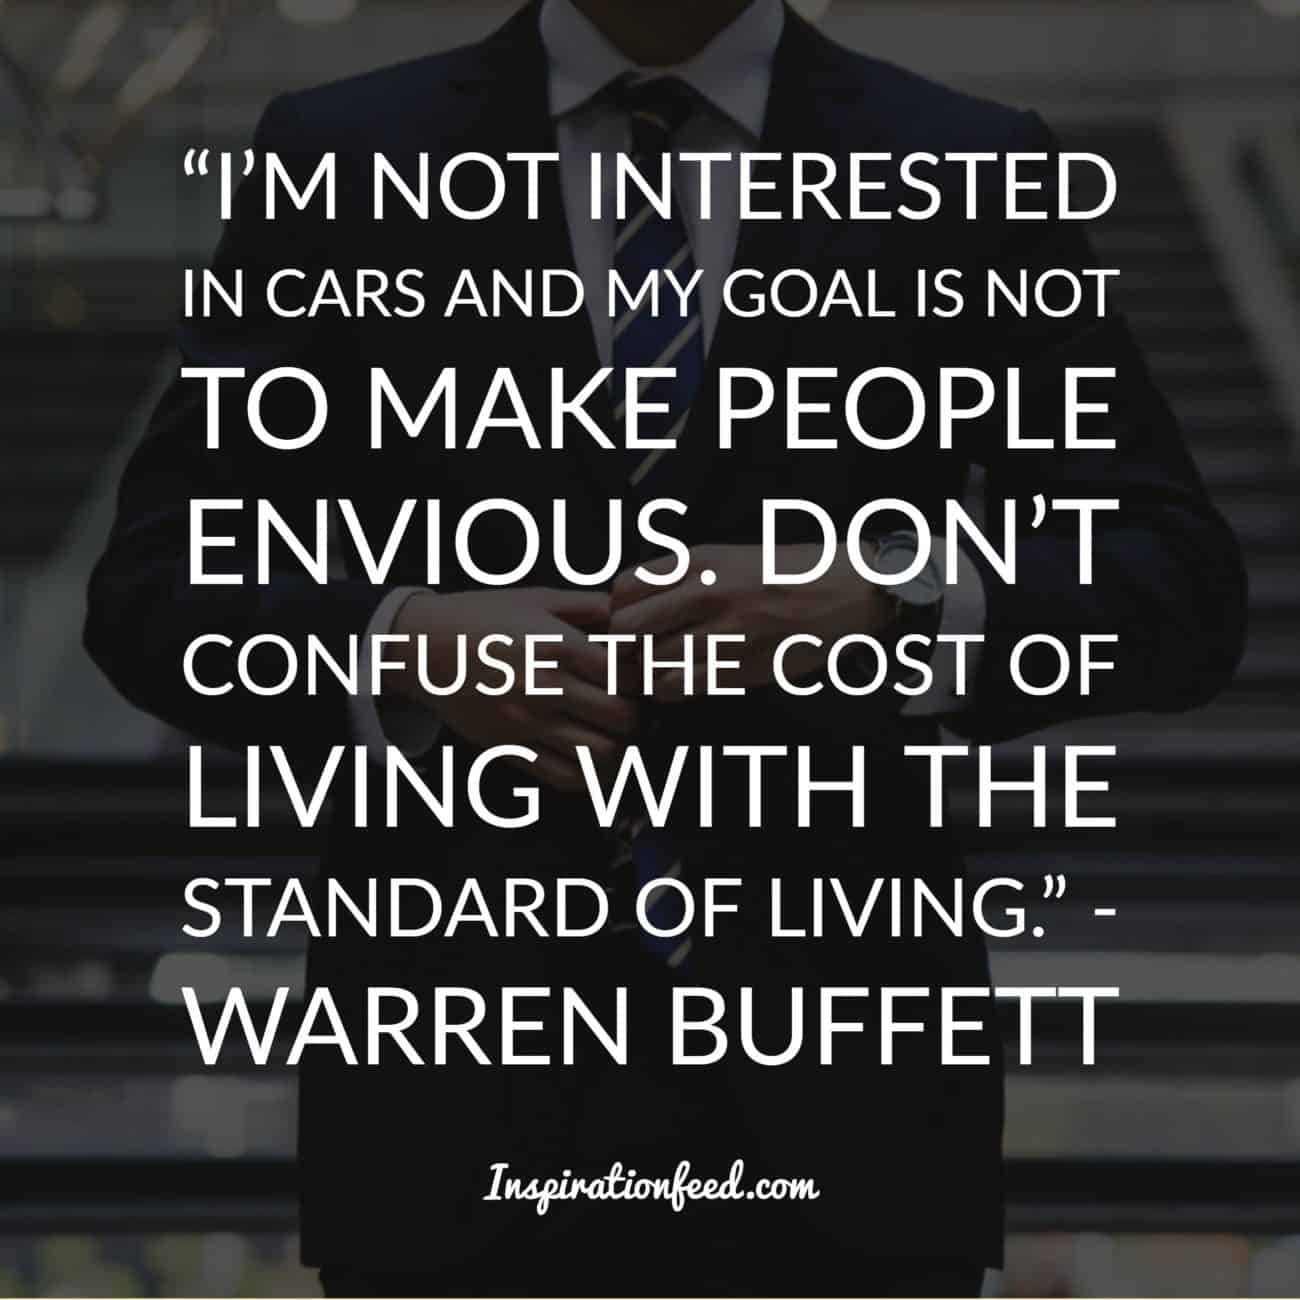 40 Brilliant Warren Buffett Quotes To Help You Build Wealth And